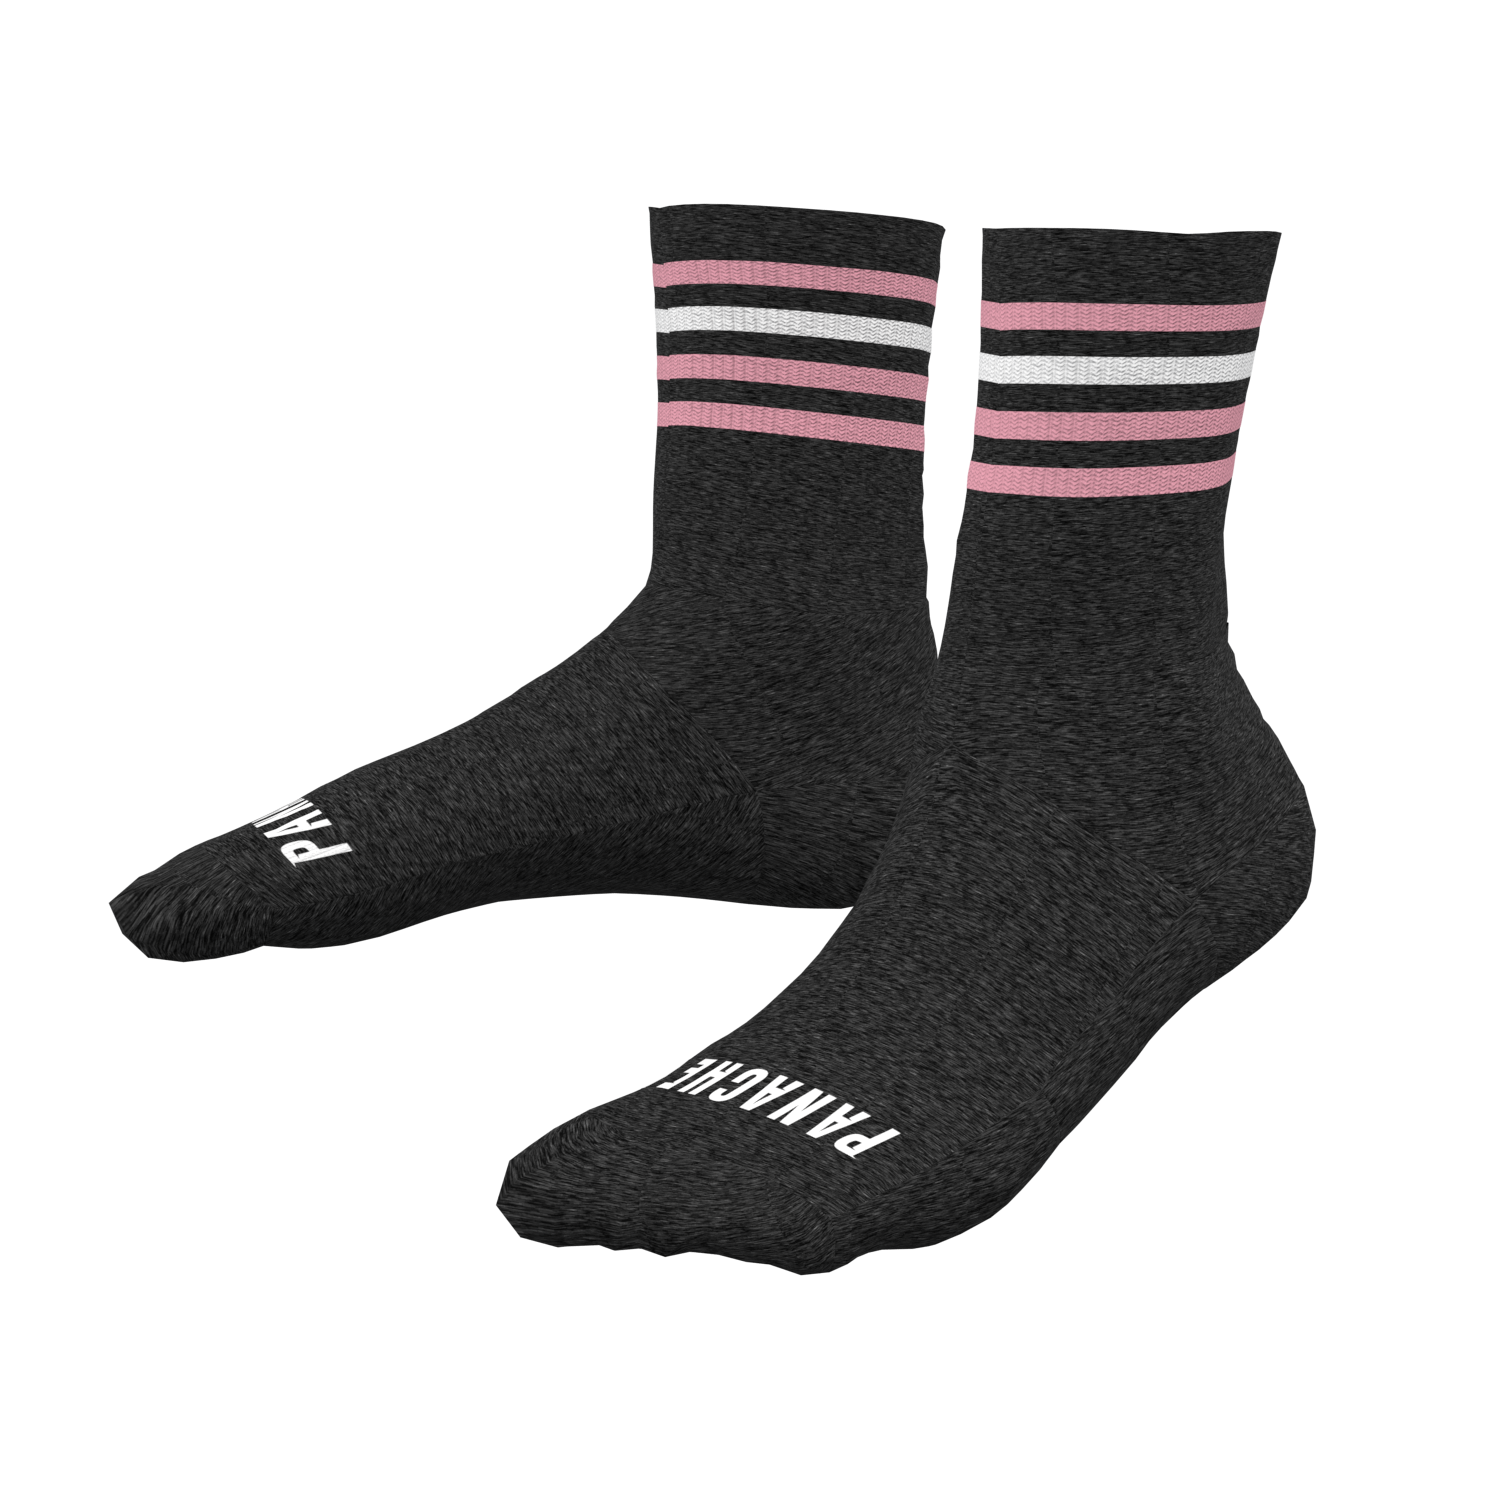 Growdy Merino Wool Socks - CHARCOAL with Pink/White stripes